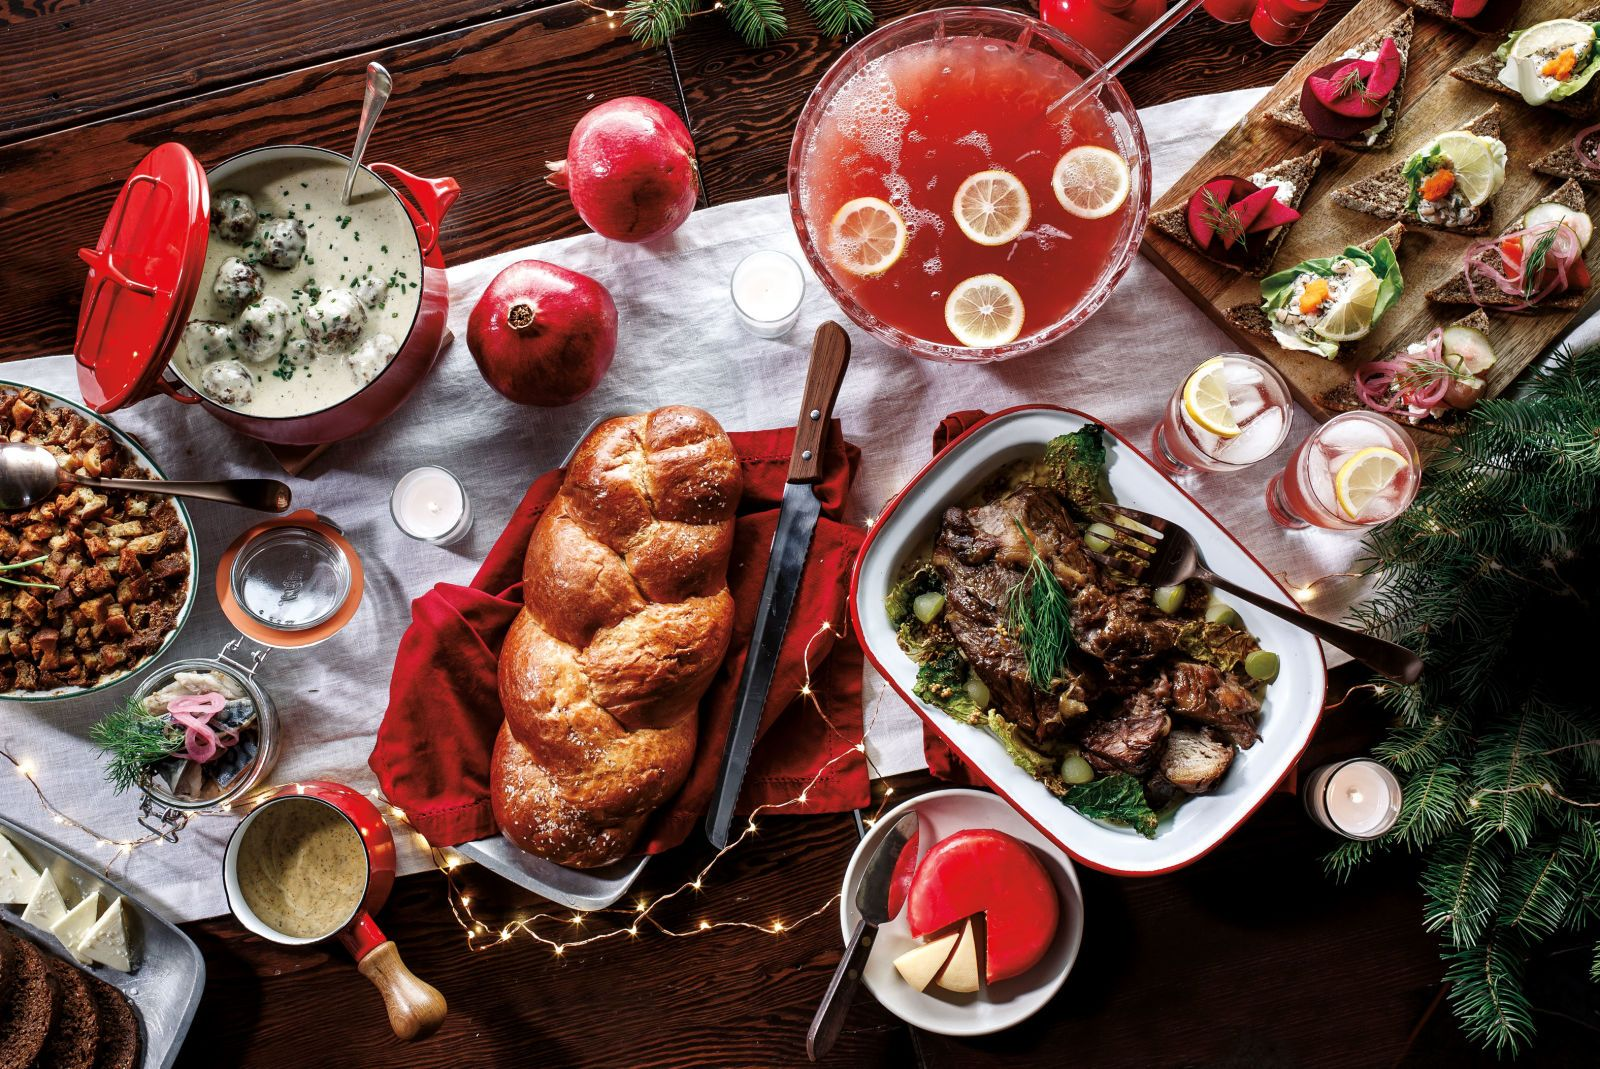 Make Nordic Holiday Punch For A Crowd Portland Restaurants Bars Oregon Wine Beer Portland Monthly Immune Boosting Foods Food Dill Cream Sauce